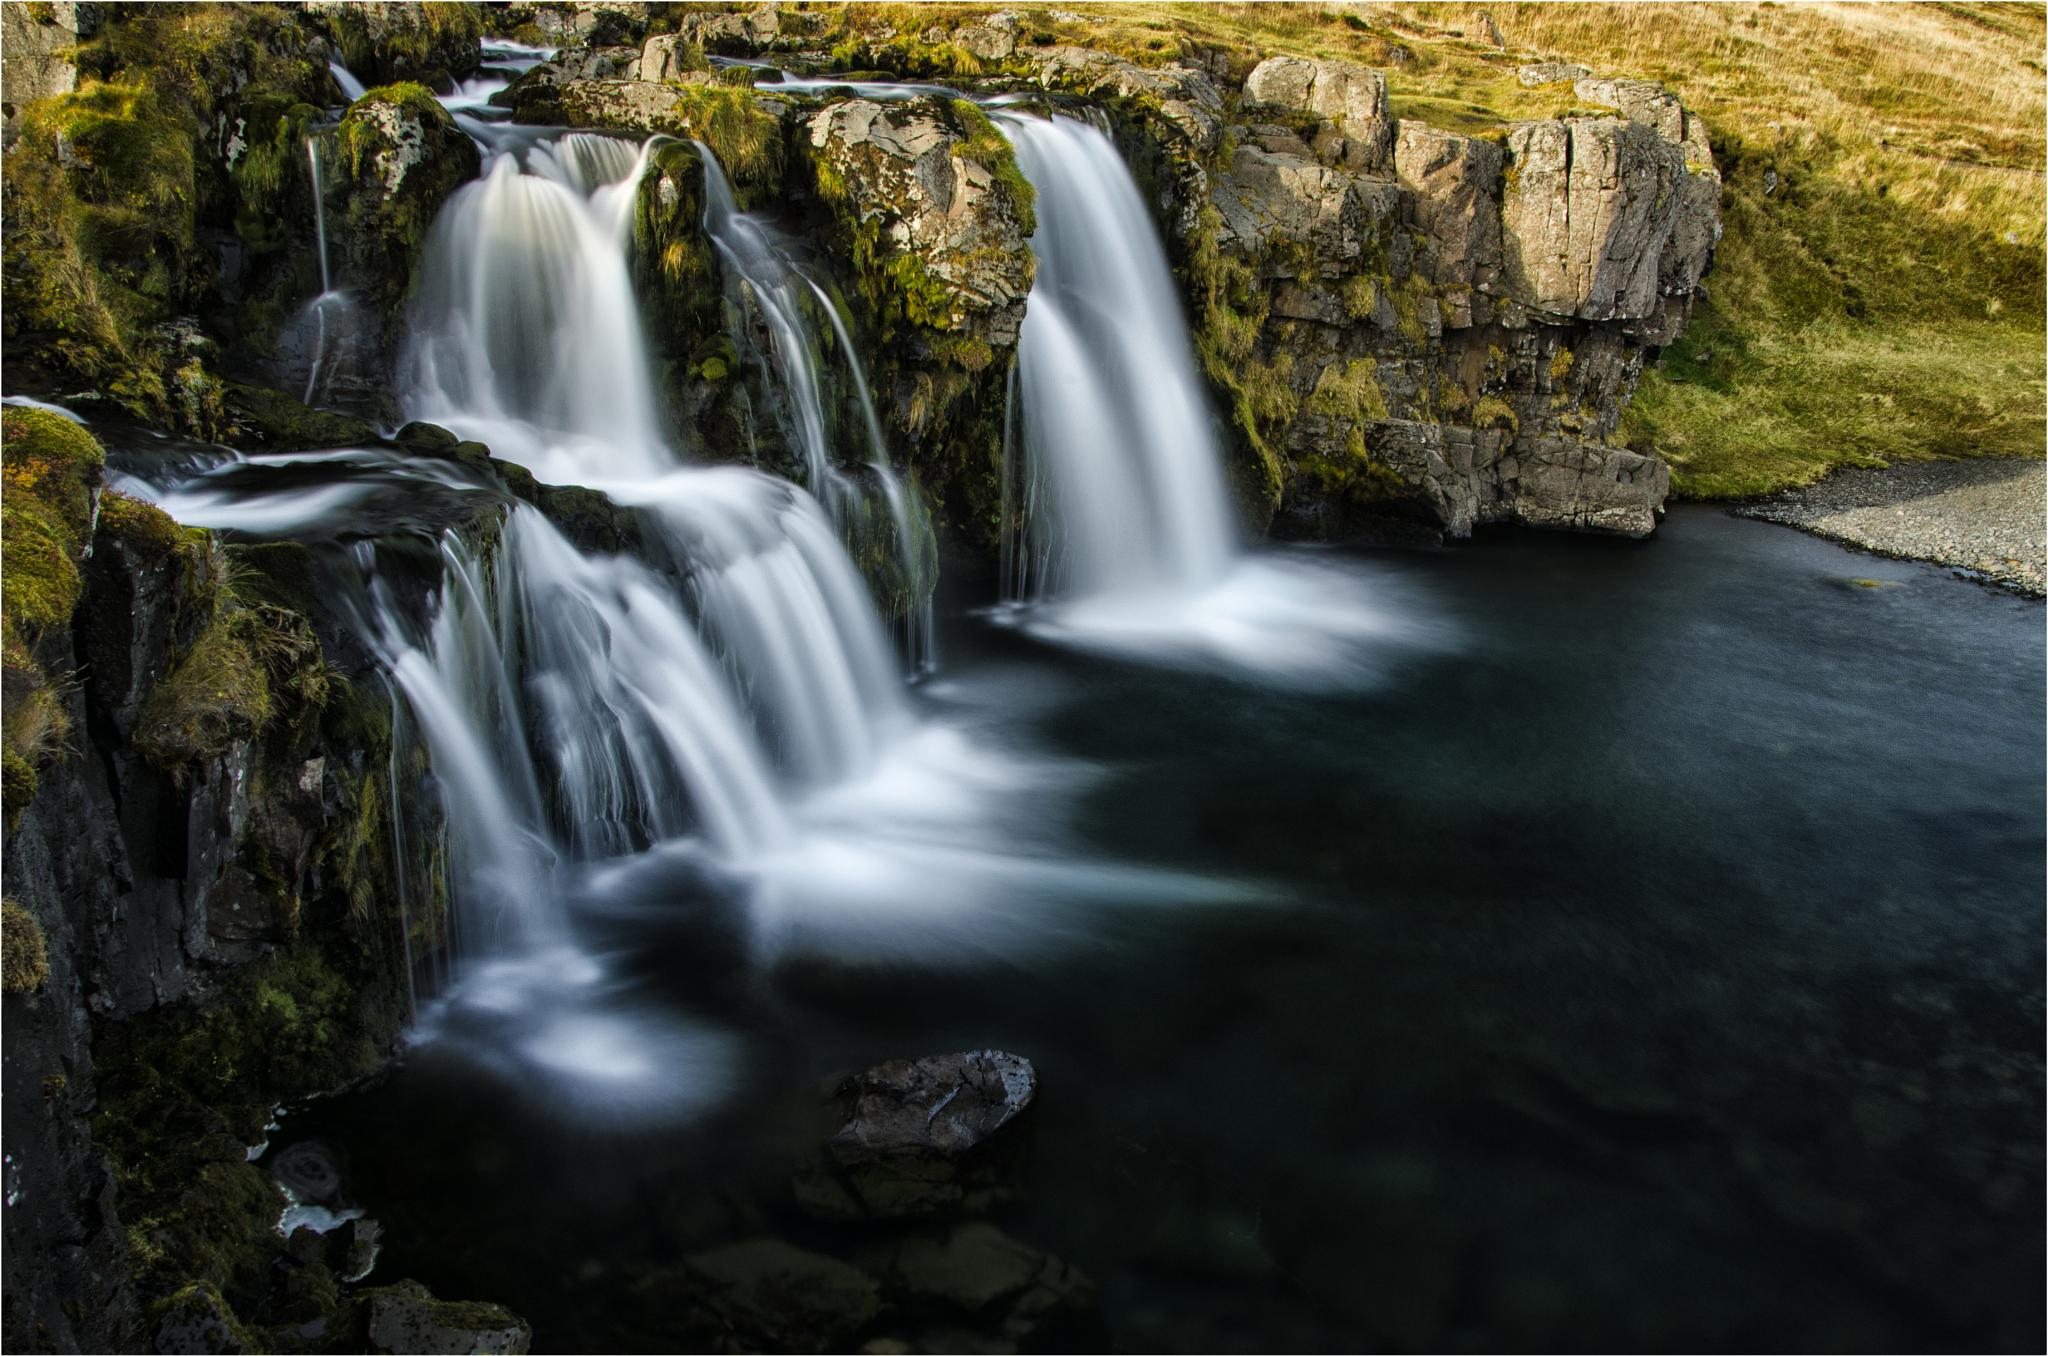 The Falls by Eric Pearce AWPF